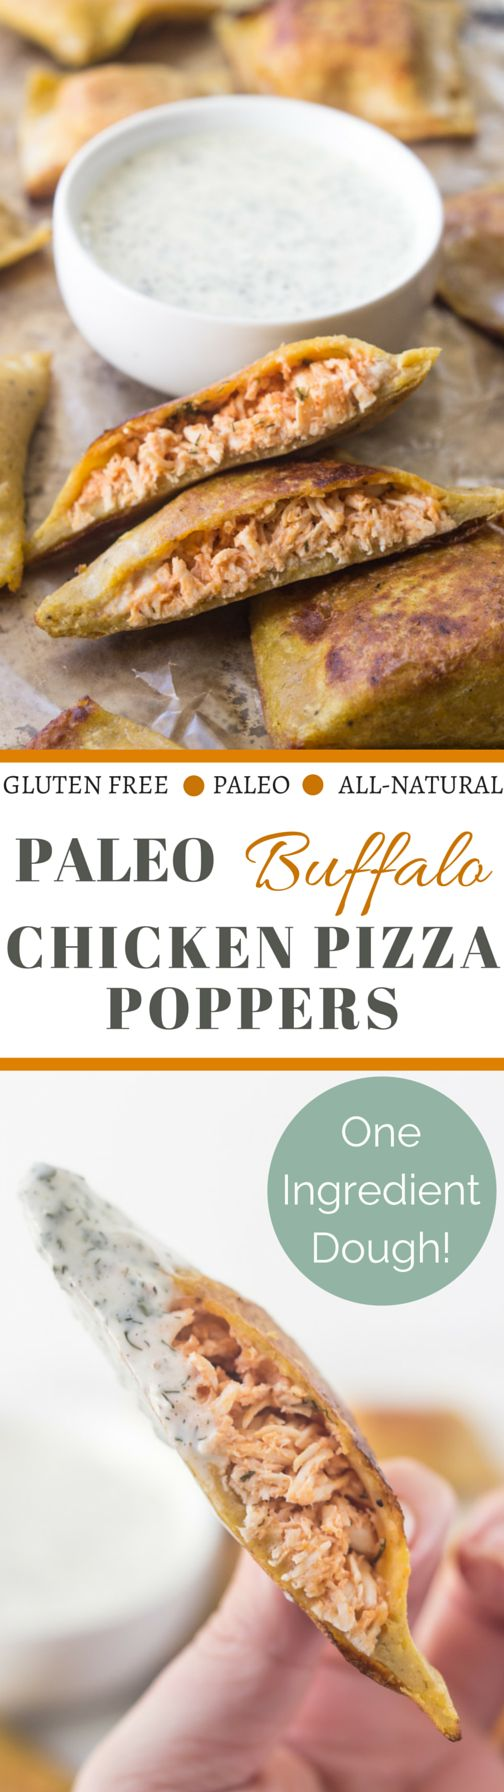 Paleo Buffalo Chicken Pizza Poppers - one ingredient dough!  Plus they're served with a ridiculously good Paleo ranch dressing! A great Paleo appetizer